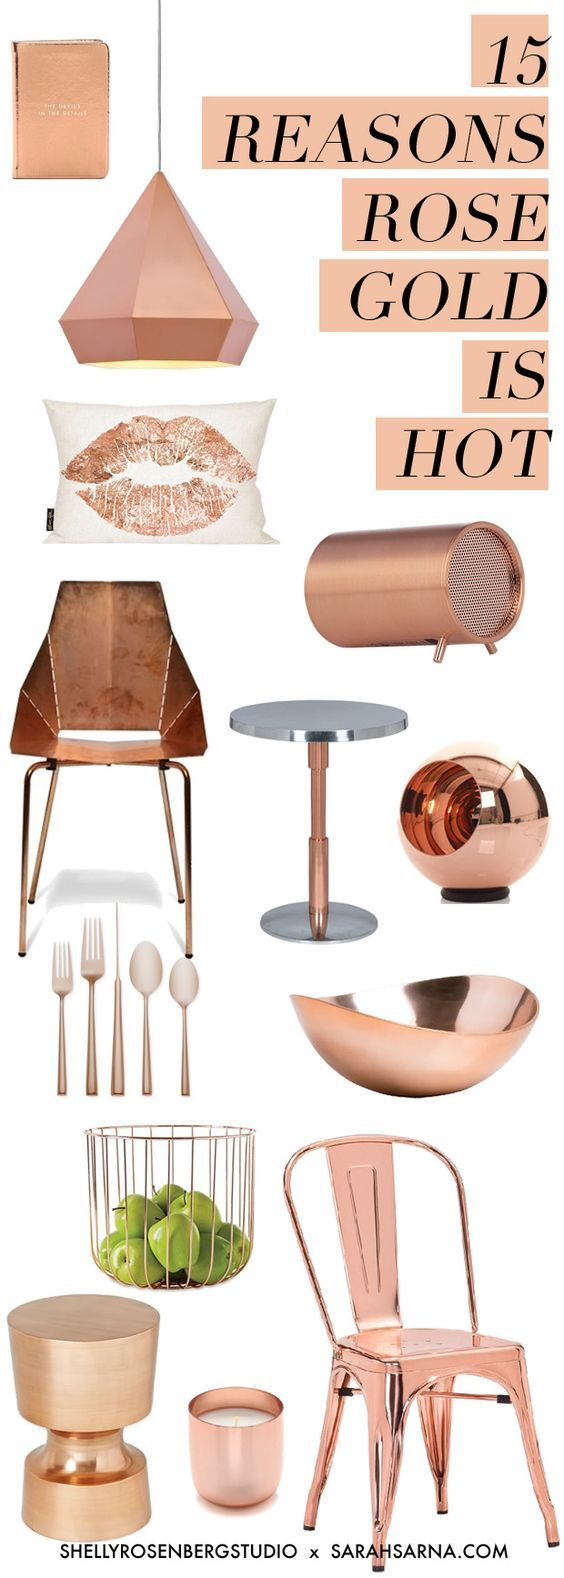 22 best copper rose gold kitchen accessories images on for Room decor rose gold